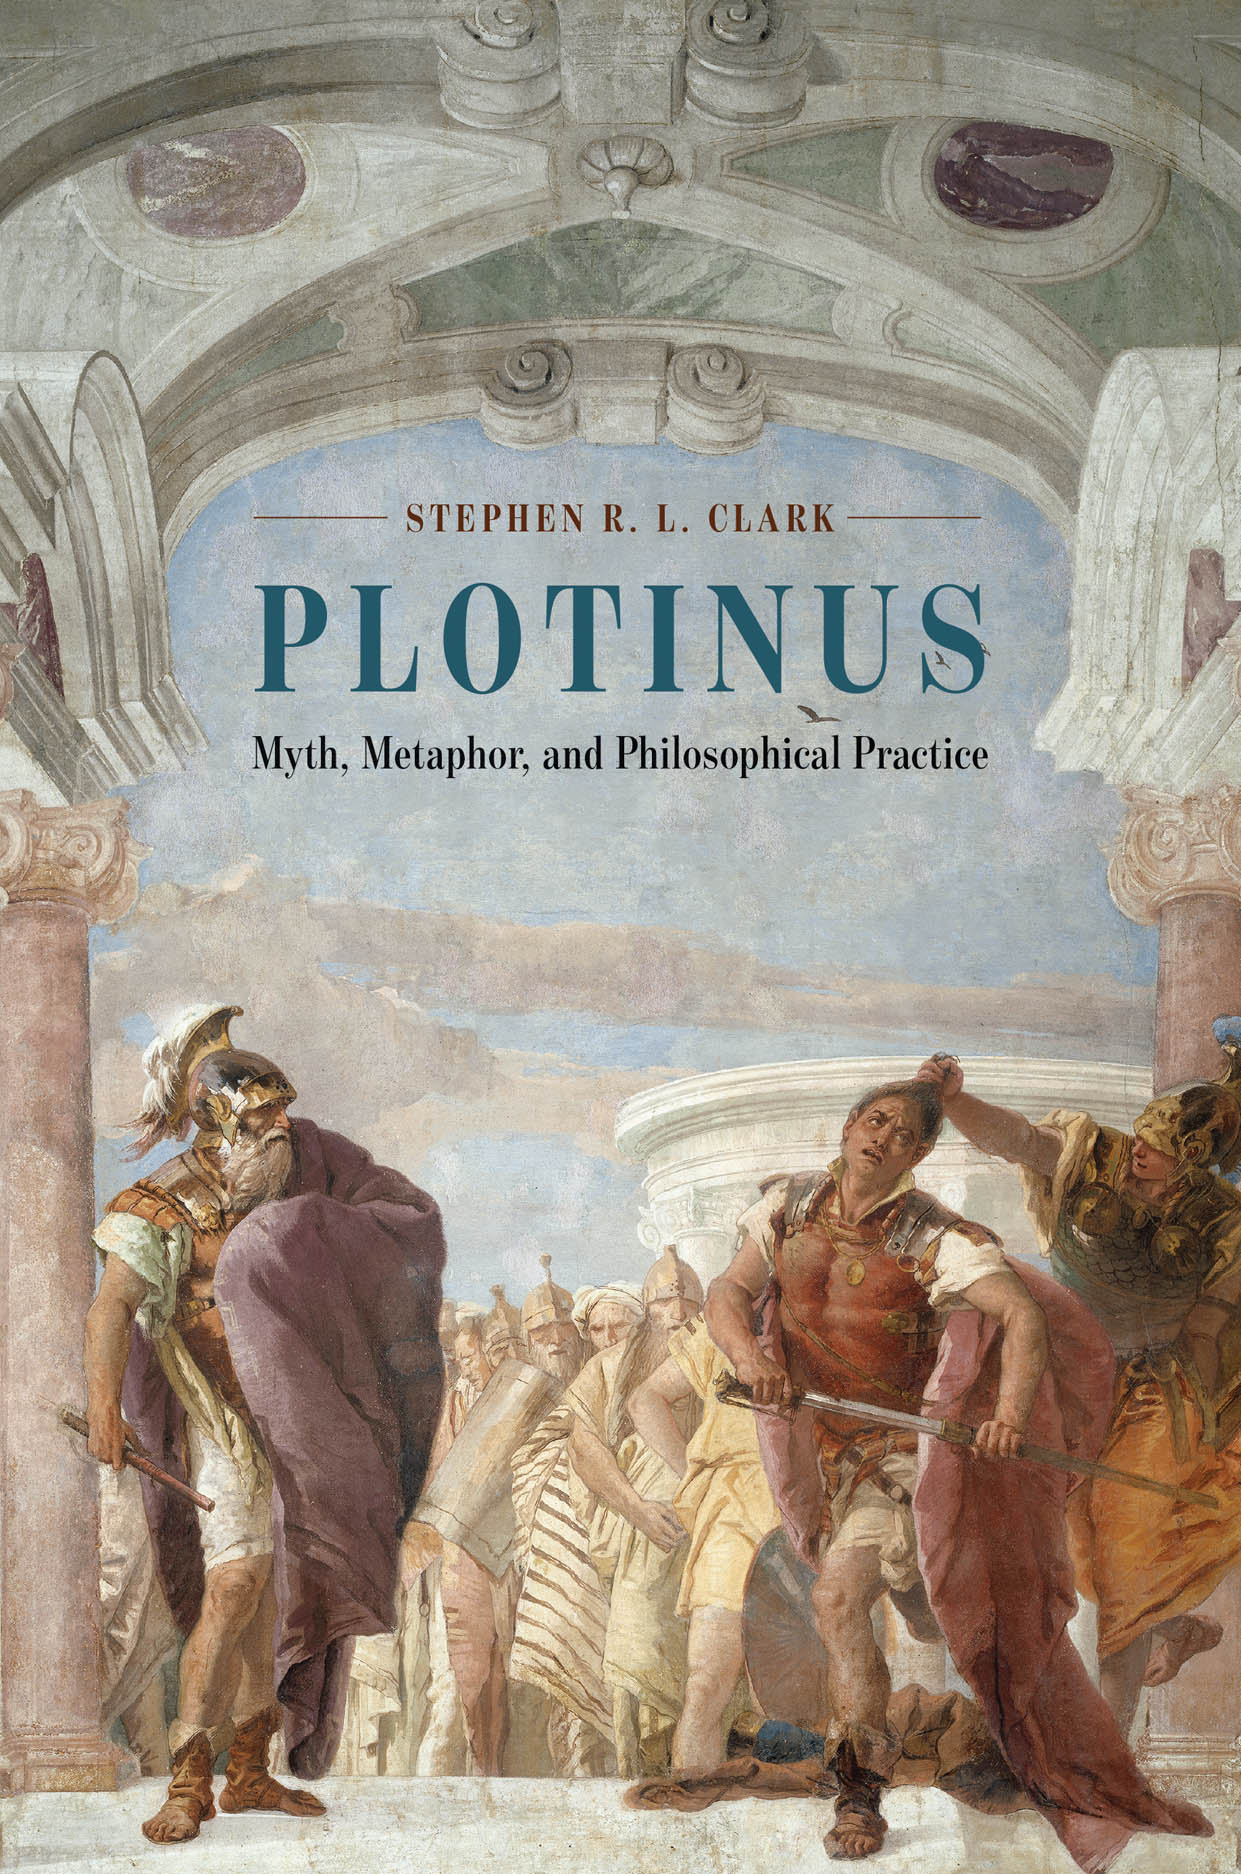 Plotinus: Myth, Metaphor, and Philosophical Practice